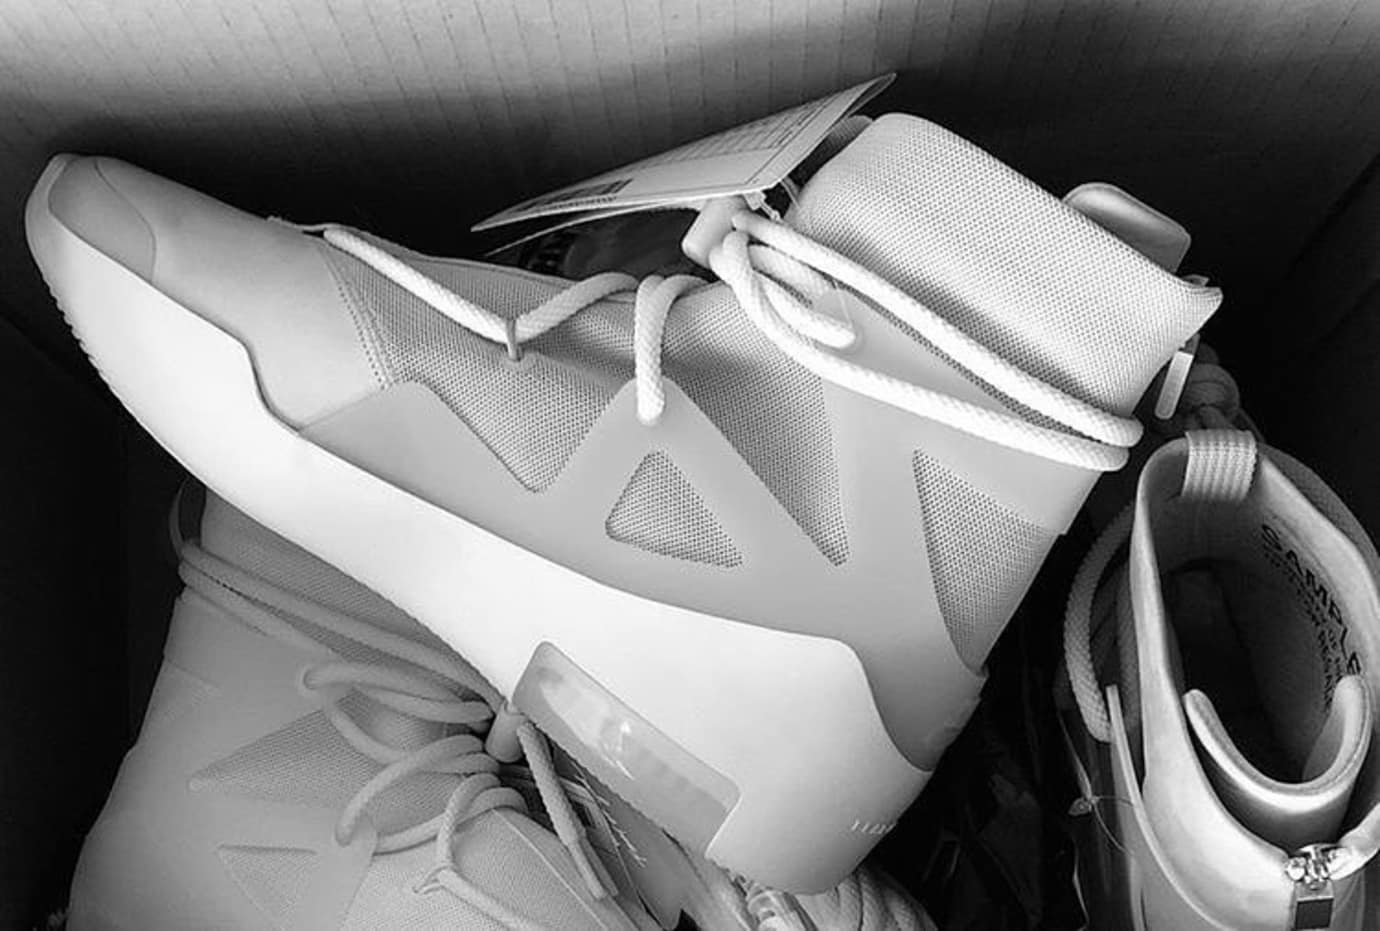 The Best Look Yet at the Fear of God x Nike Air FOG